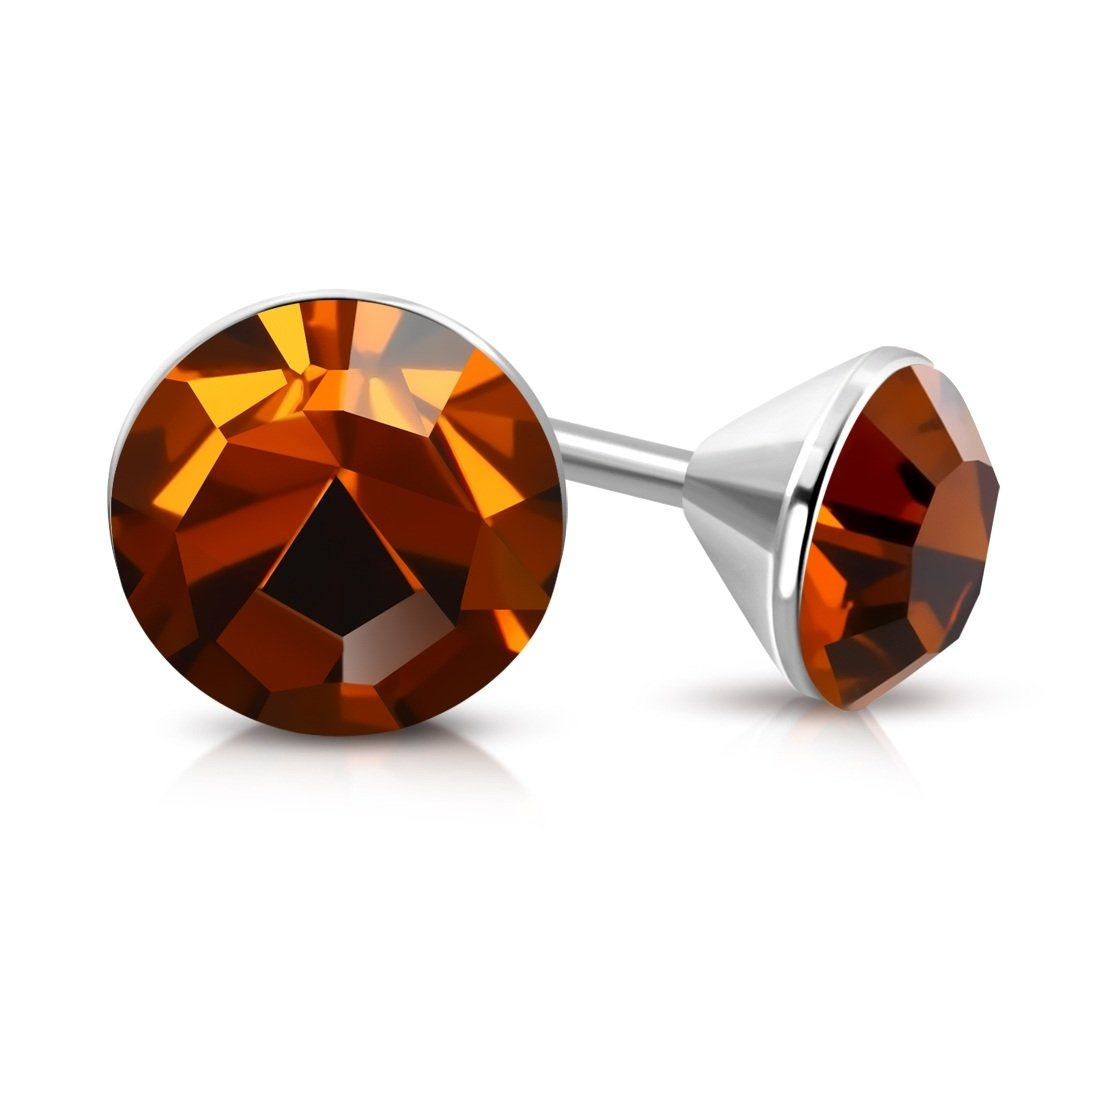 pair Stainless Steel Bezel-Set Round Circle Stud Earrings with Smoked Topaz Stellux Crystals